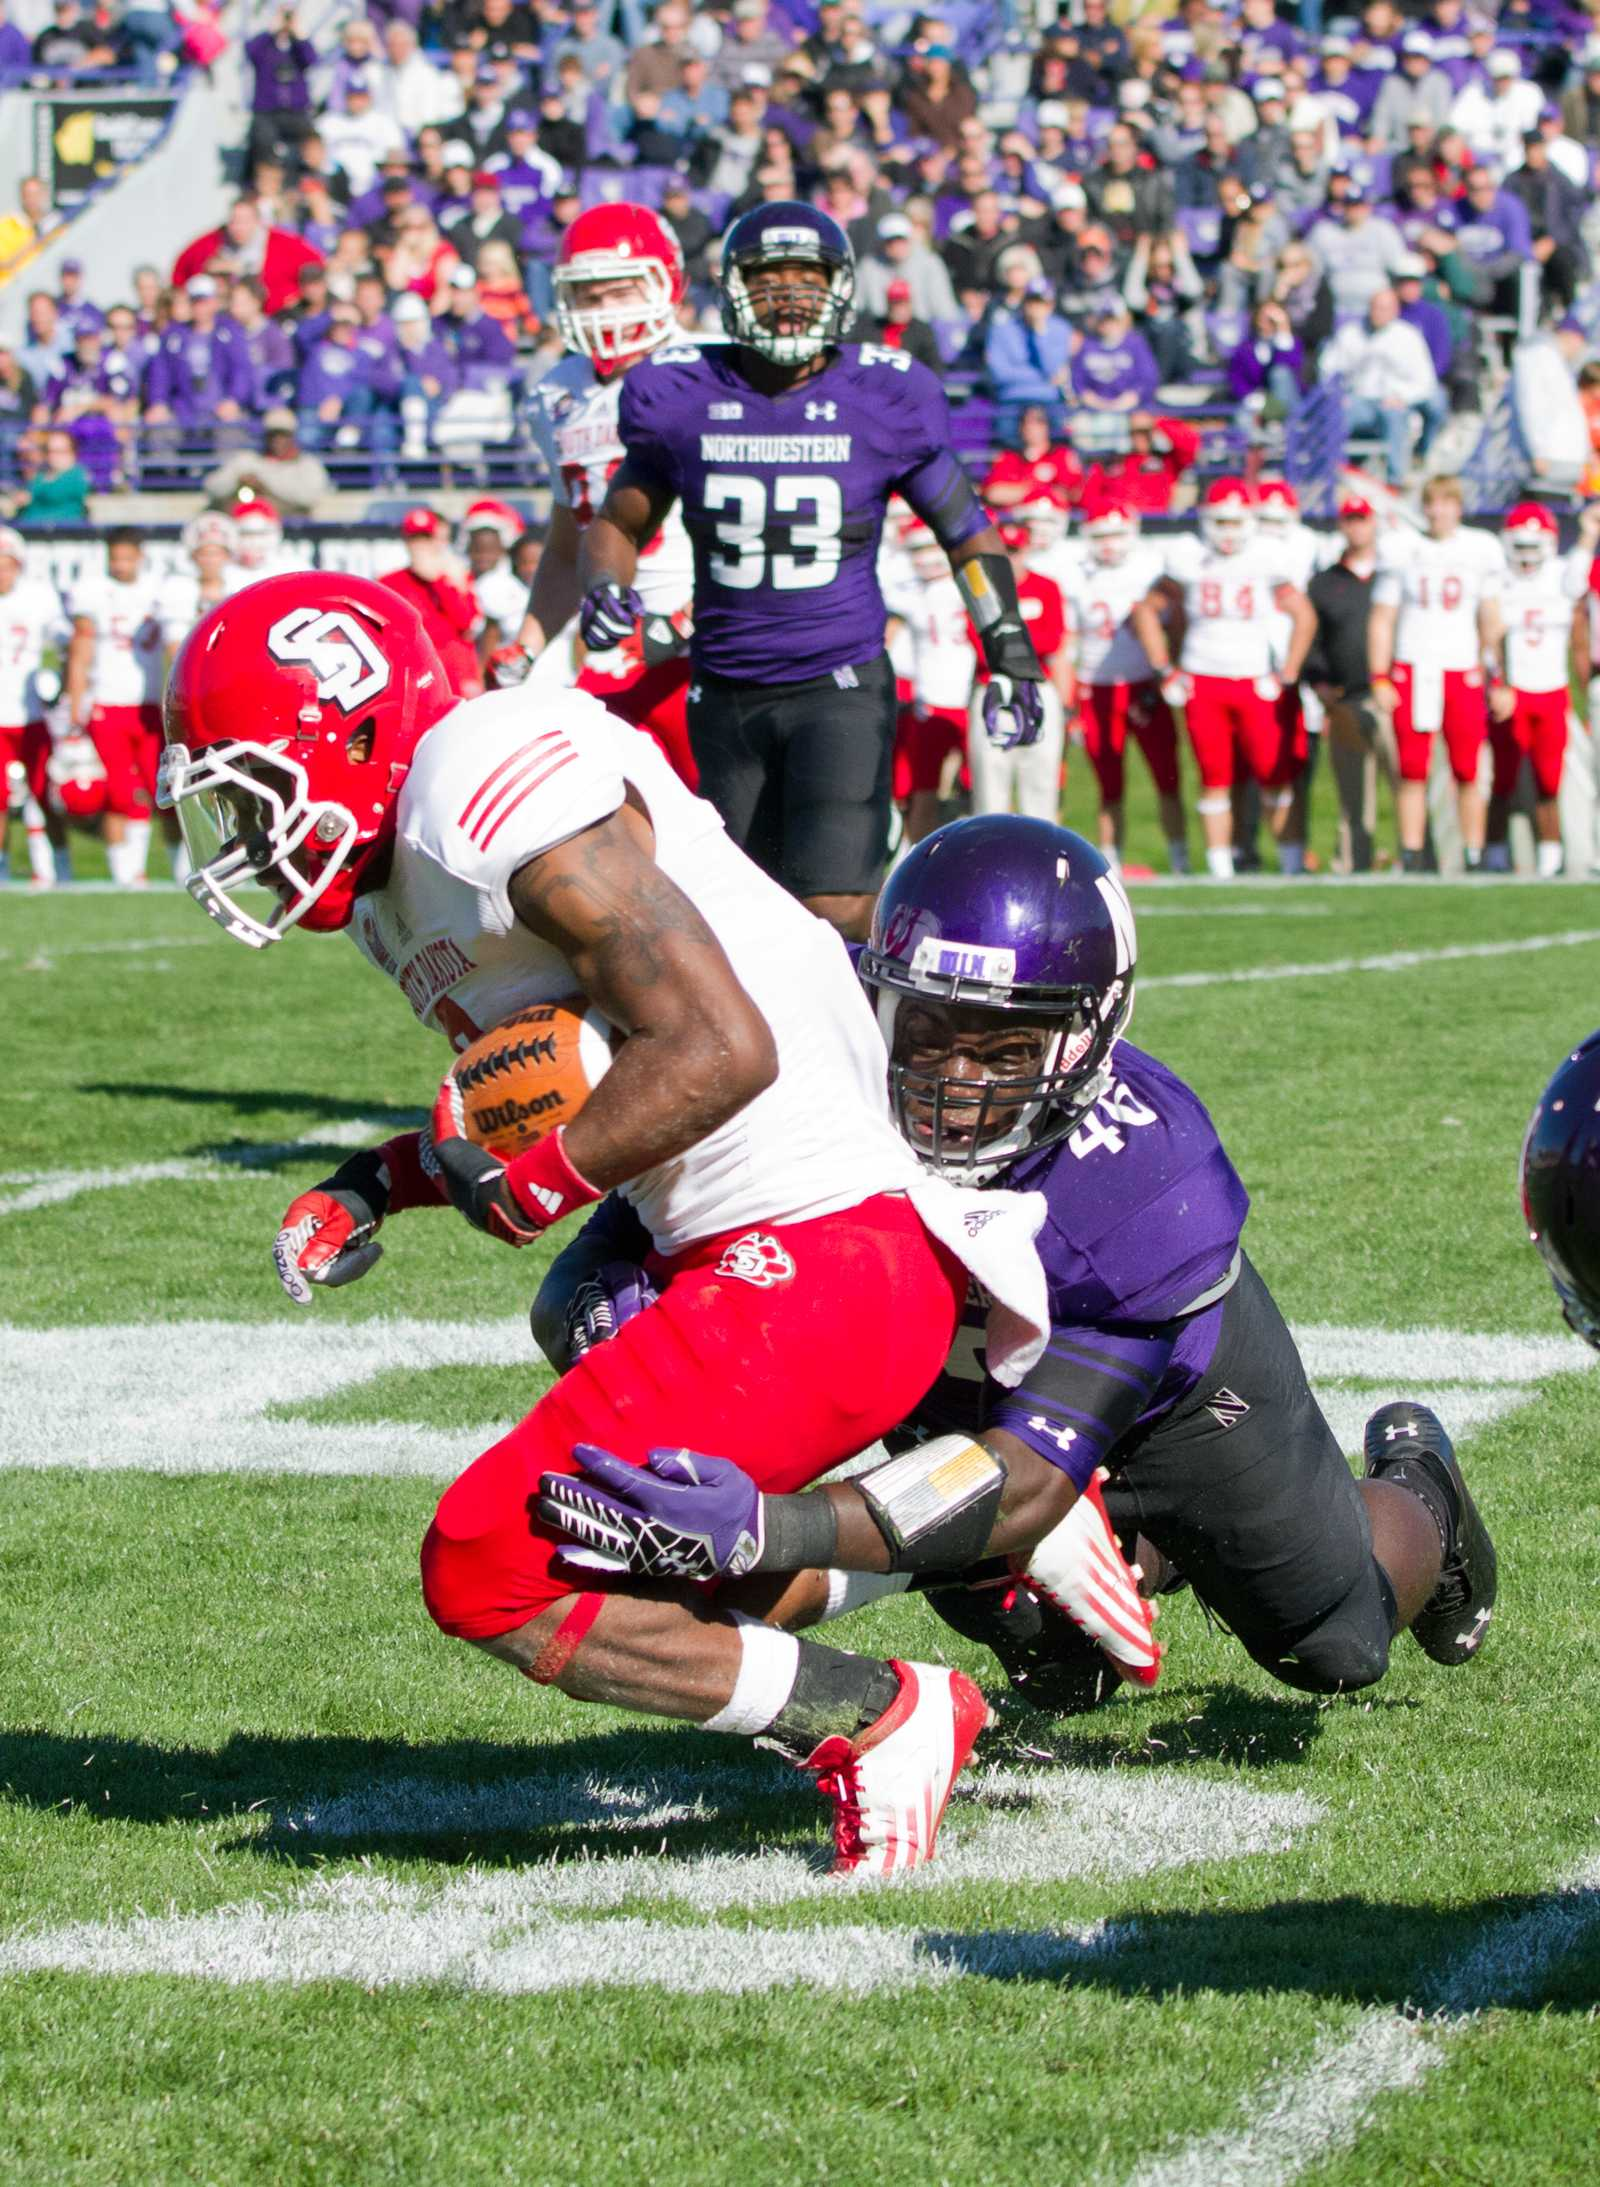 Northwestern linebacker Damien Proby takes down wide receiver Terrance Terry of South Dakota during Saturday's game.